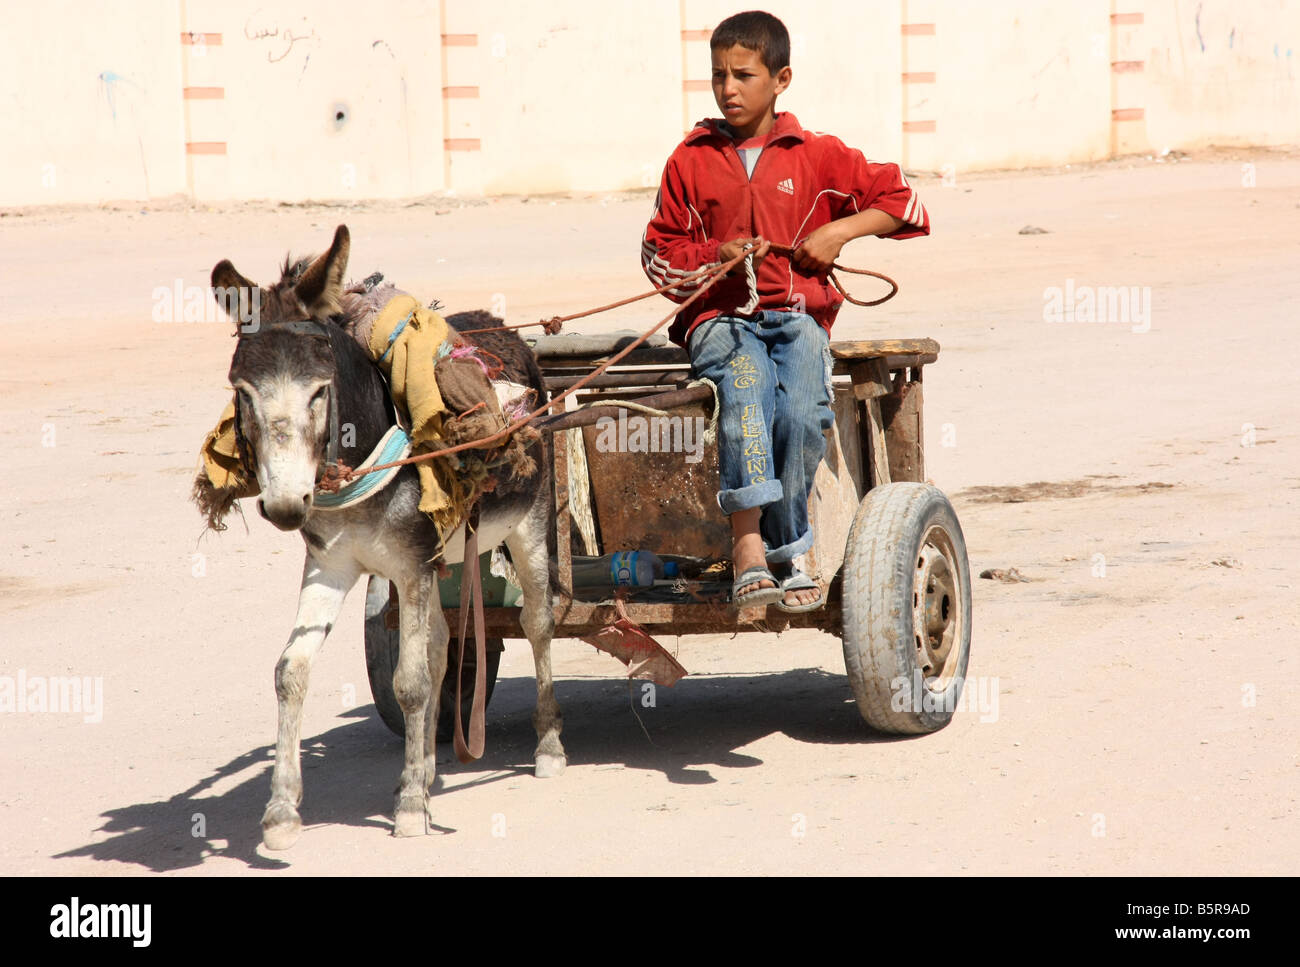 Donkey cart and driver in deserted streets of Dakhla Western Sahara - Stock Image